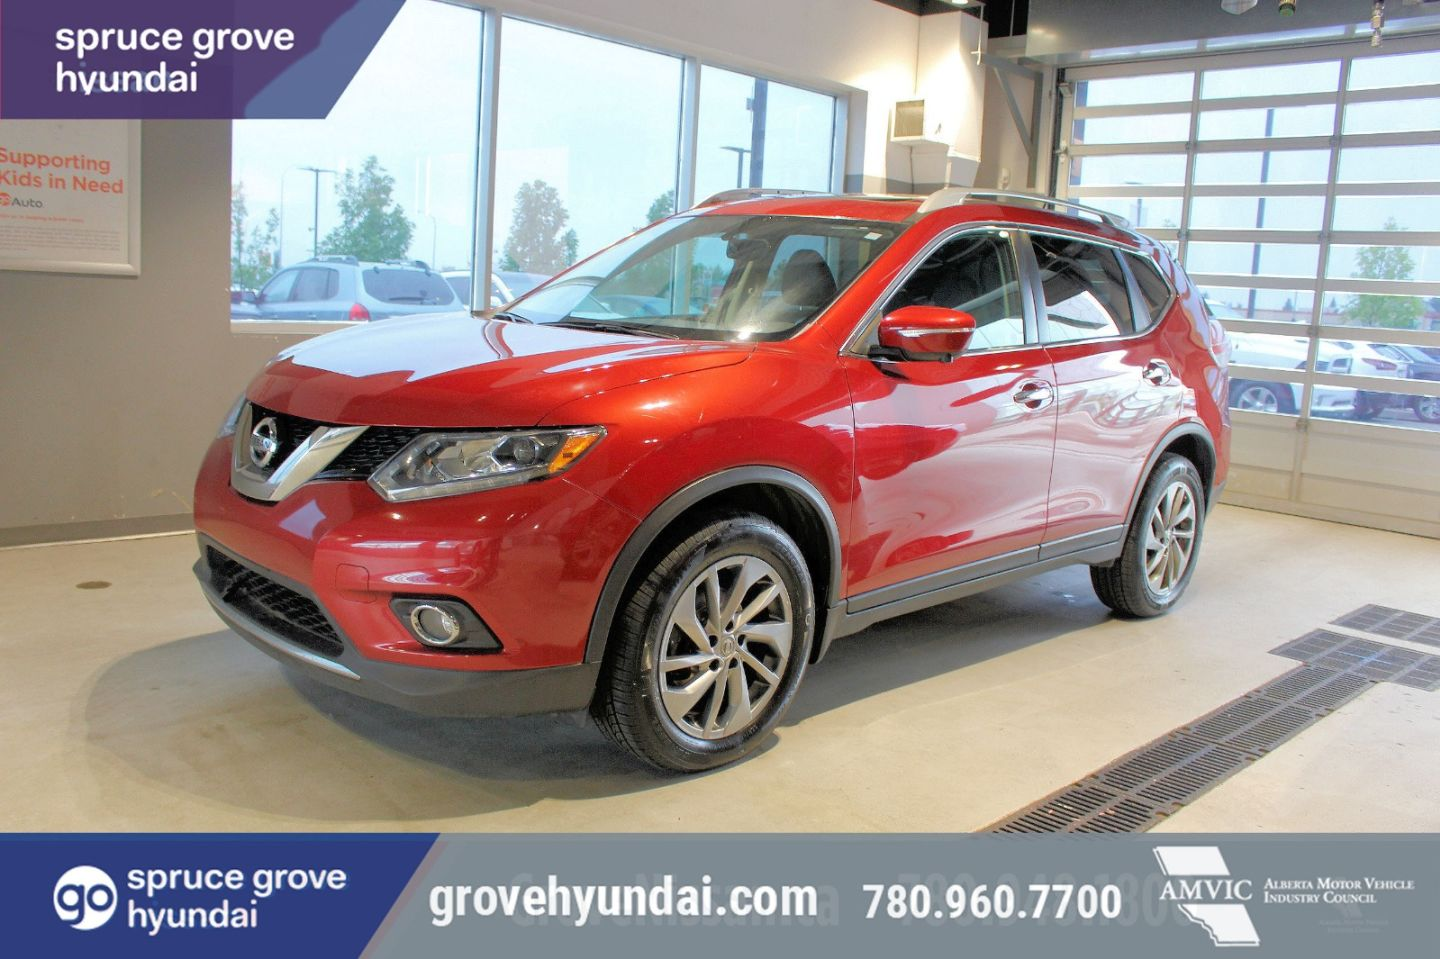 2015 Nissan Rogue SL for sale in Spruce Grove, Alberta